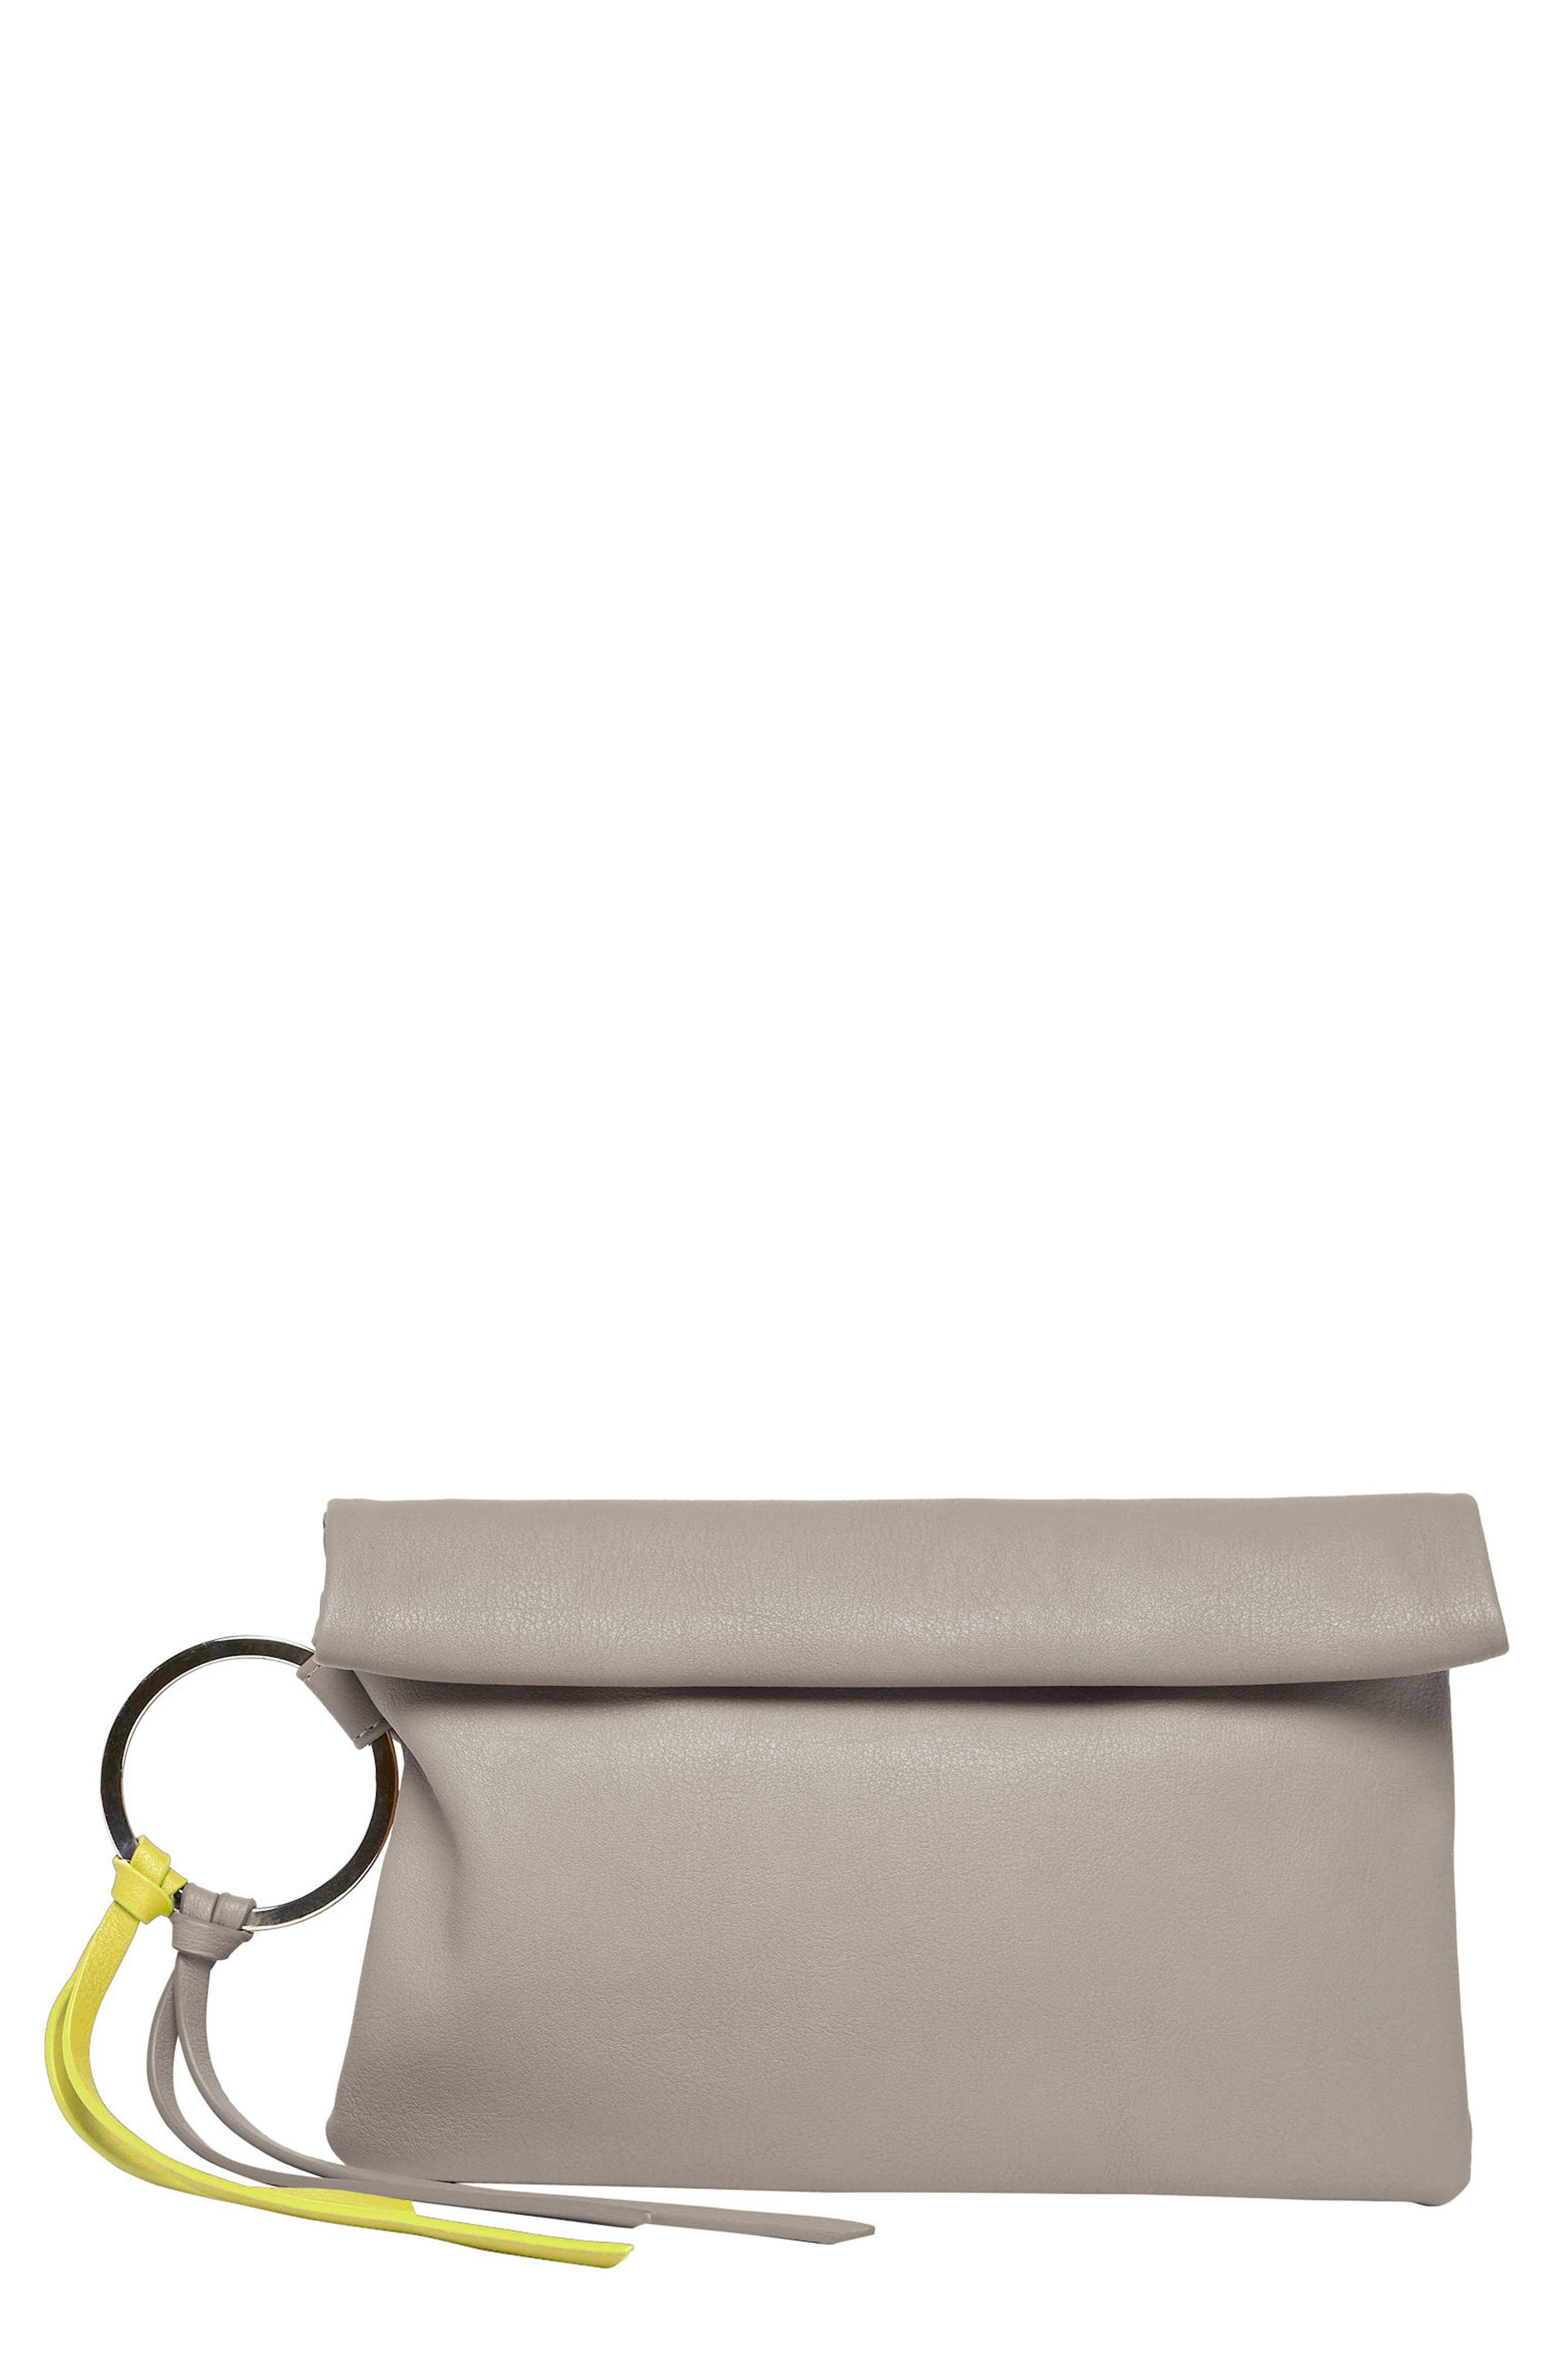 Lost Lover Vegan Leather Clutch,                         Main,                         color, Grey